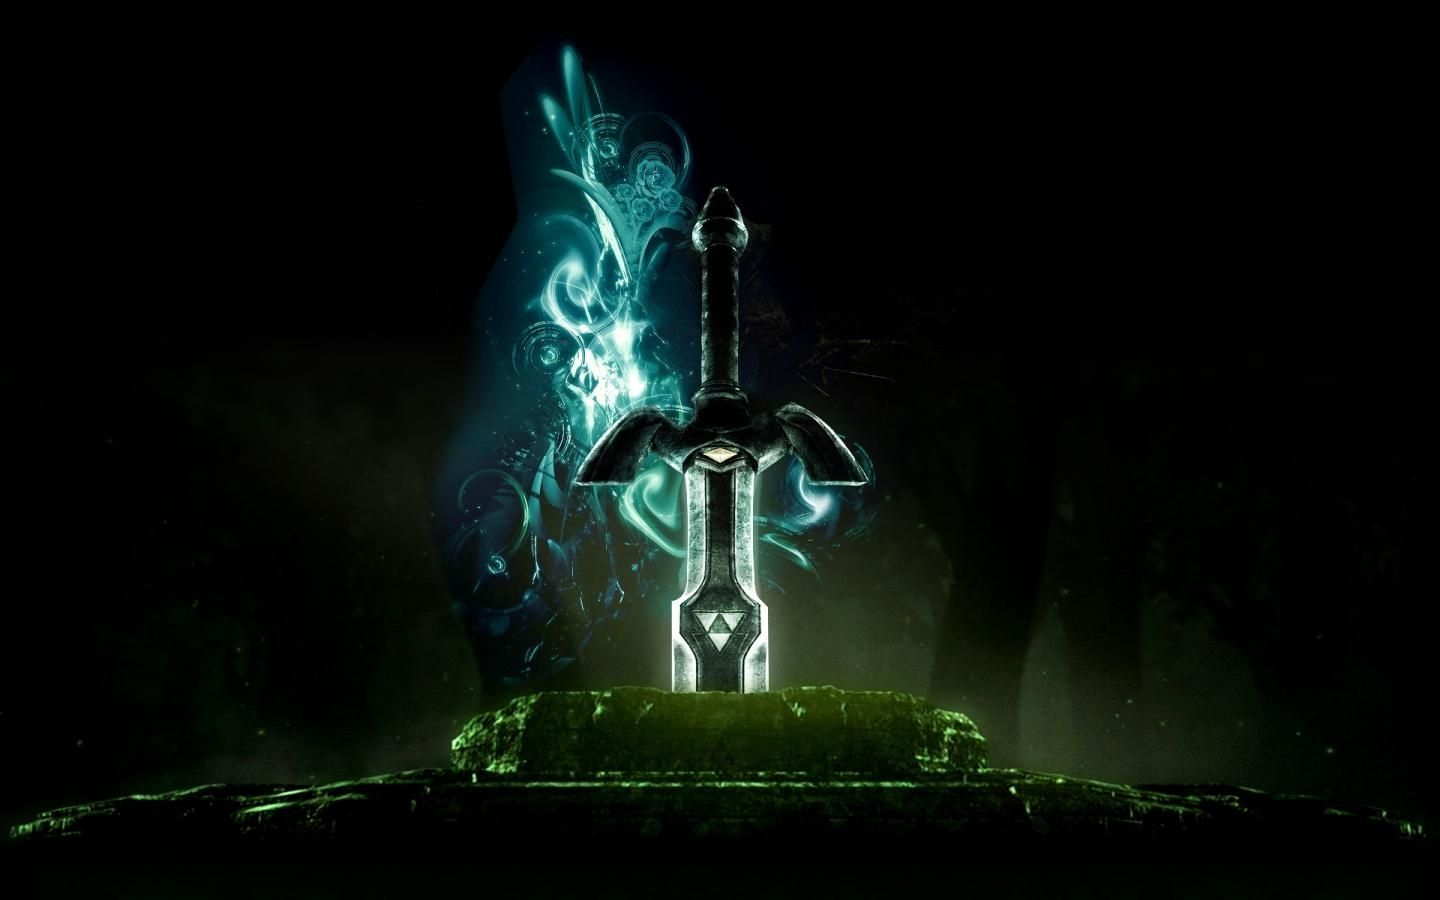 Download Desktop Background Video Games Hd Desktop Background Video Games Hd Download Download Download De Zelda Master Sword Master Sword Legend Of Zelda